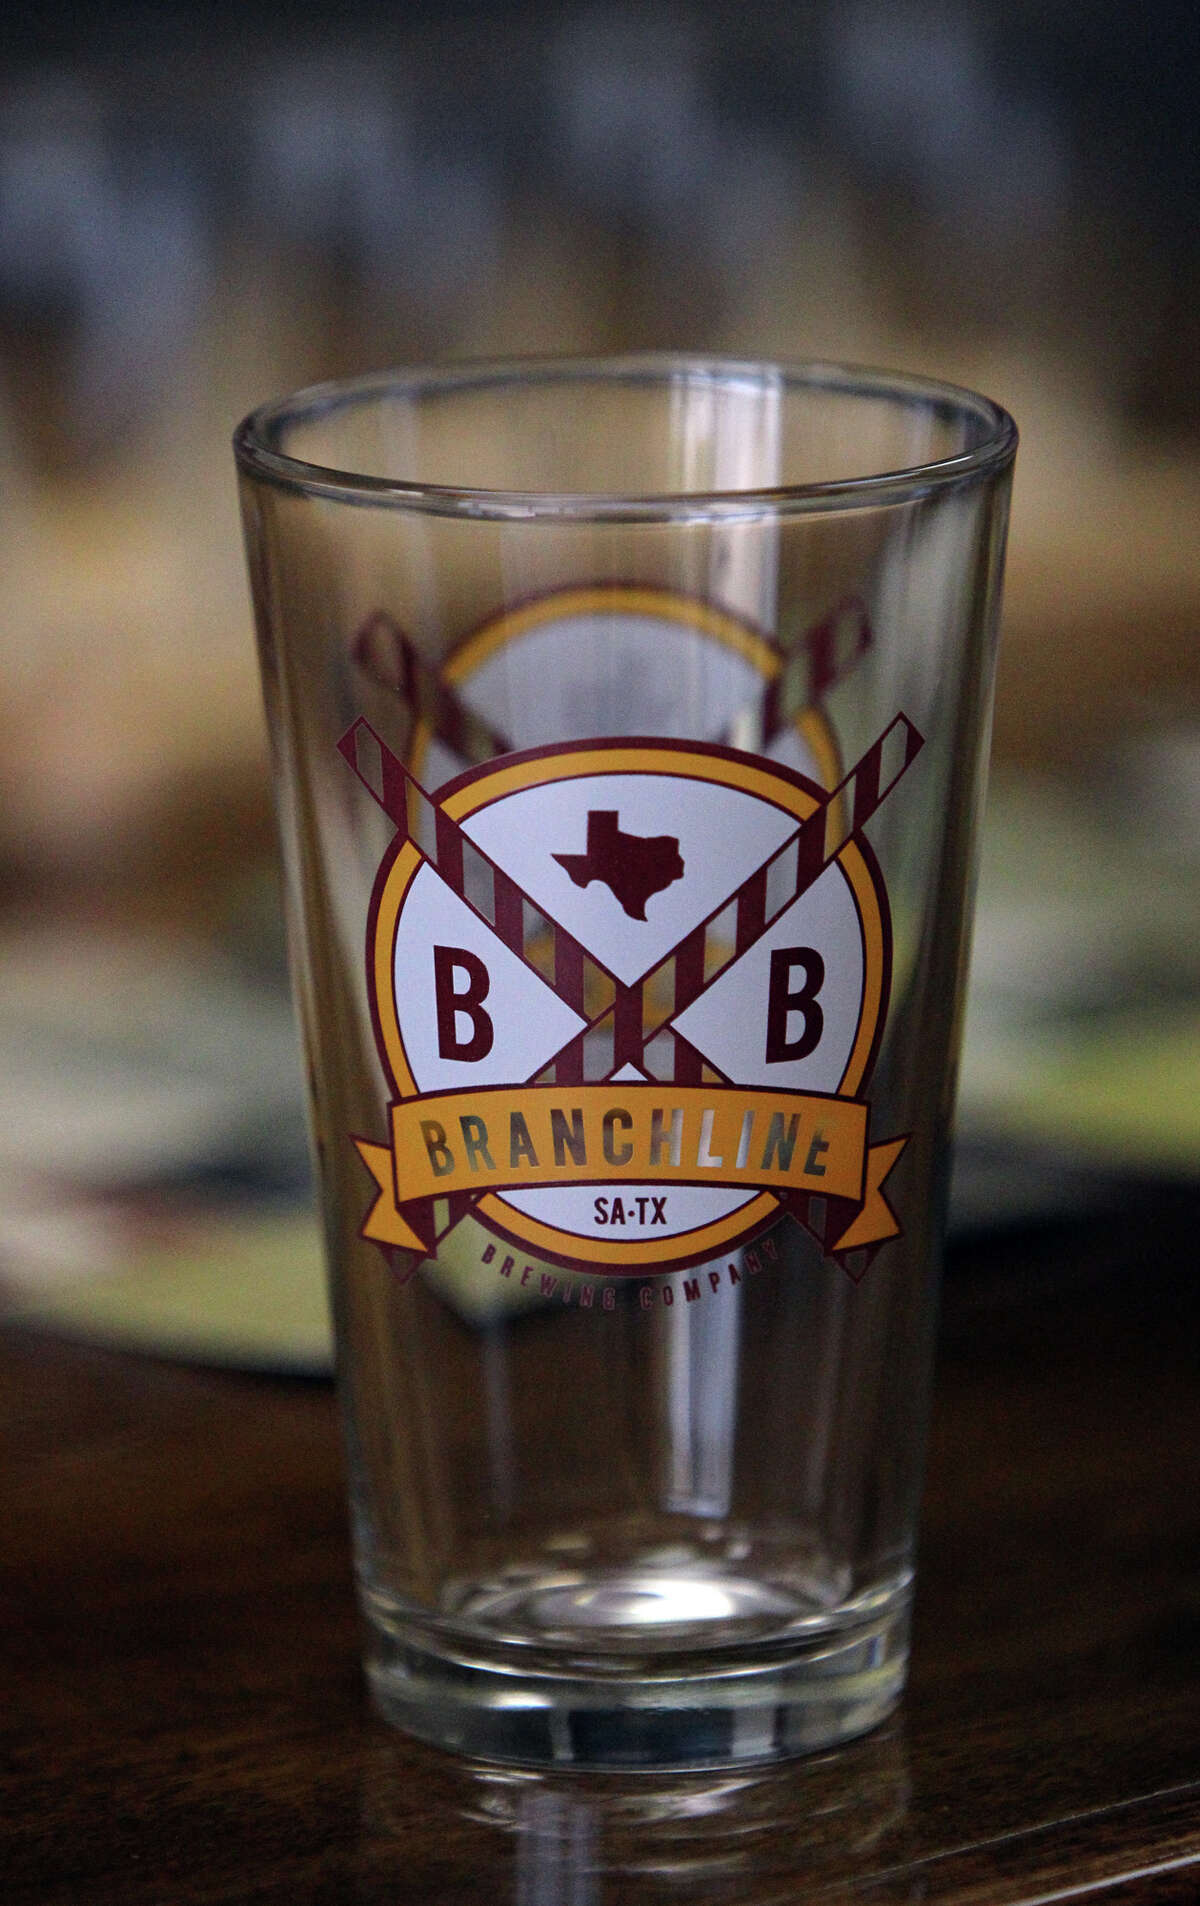 Branchline gets crafty Beat the summer heat with a cold craft beer made in San Antonio. Branchline Brewing Co. will hold brewery tours and beer tastings at its facility Saturday. Along with its rye IPA, amber ale and blonde ale, the brewery will have a few limited-release brews available to try at its taproom.Admission is free but beer tickets are $3. Food trucks will provide eats and the event is kid and dog friendly. Space is limited and guests are encouraged to bring folding chairs. - Valentino Lucio 5-8 p.m. Saturday, 3633 Metro Parkway. Free admission; $3 beer tickets.